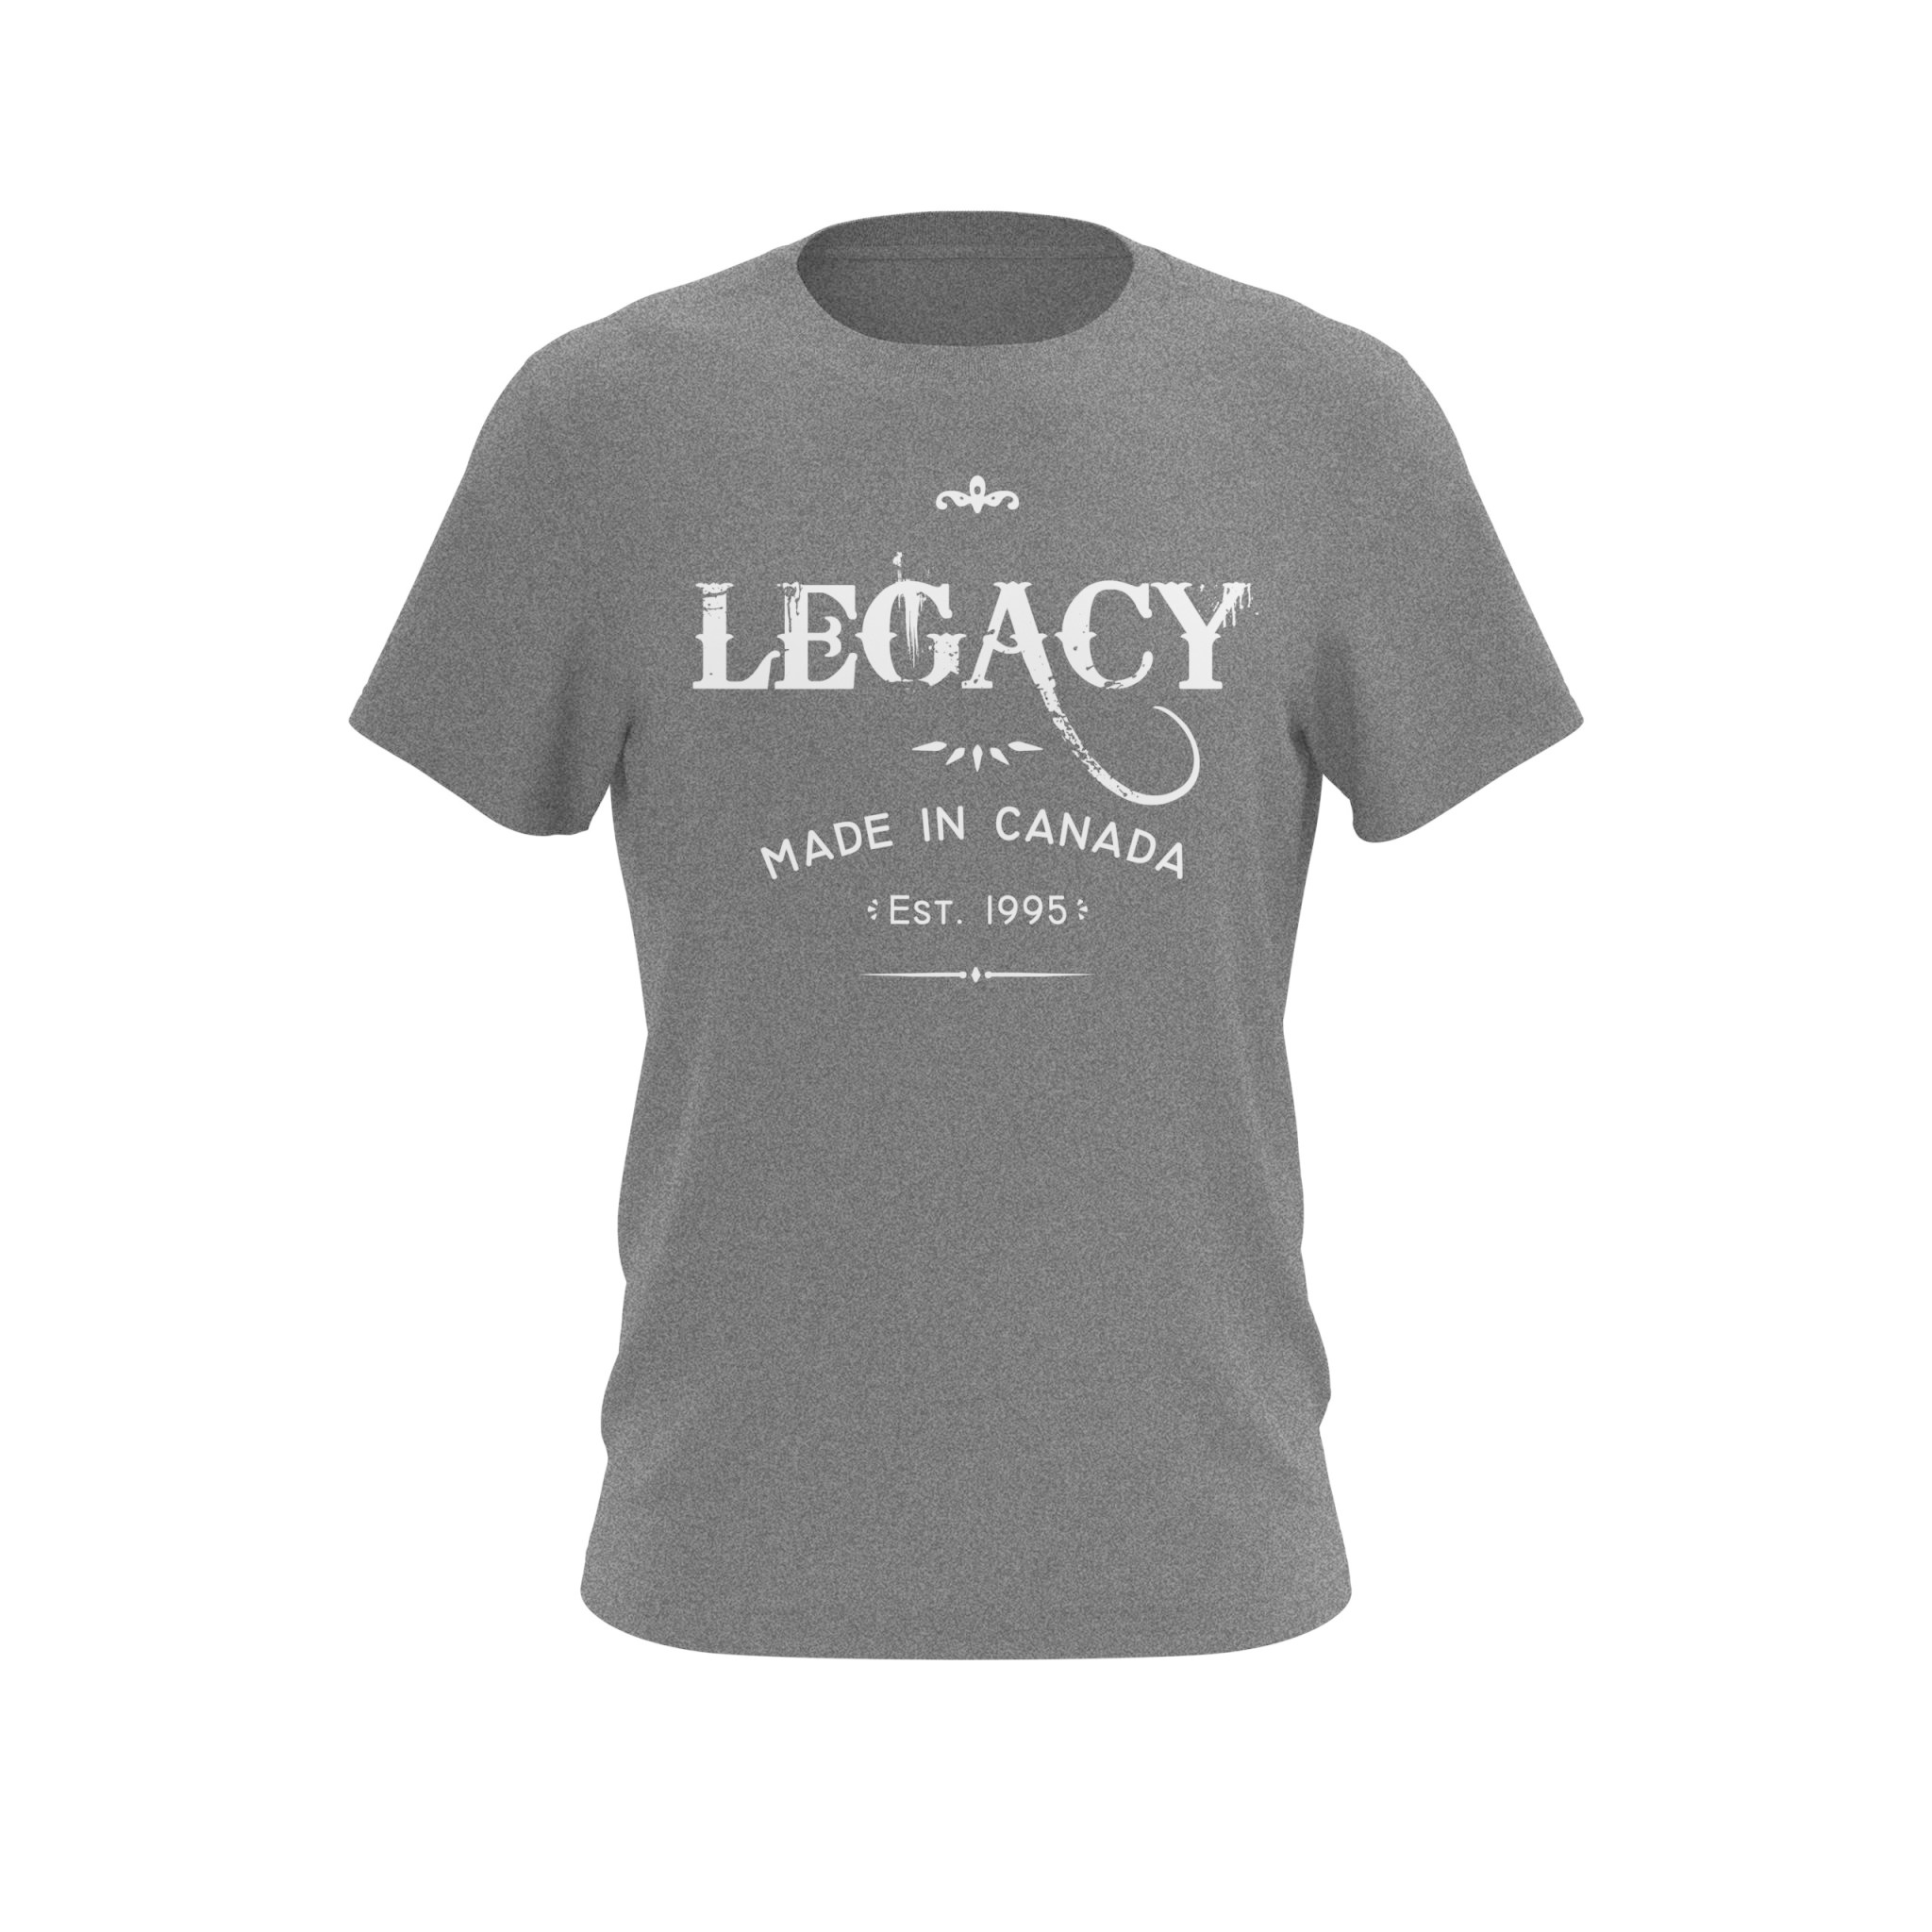 ART & LUTHERIE T-SHIRT ART & LUTHERIE LEGACY